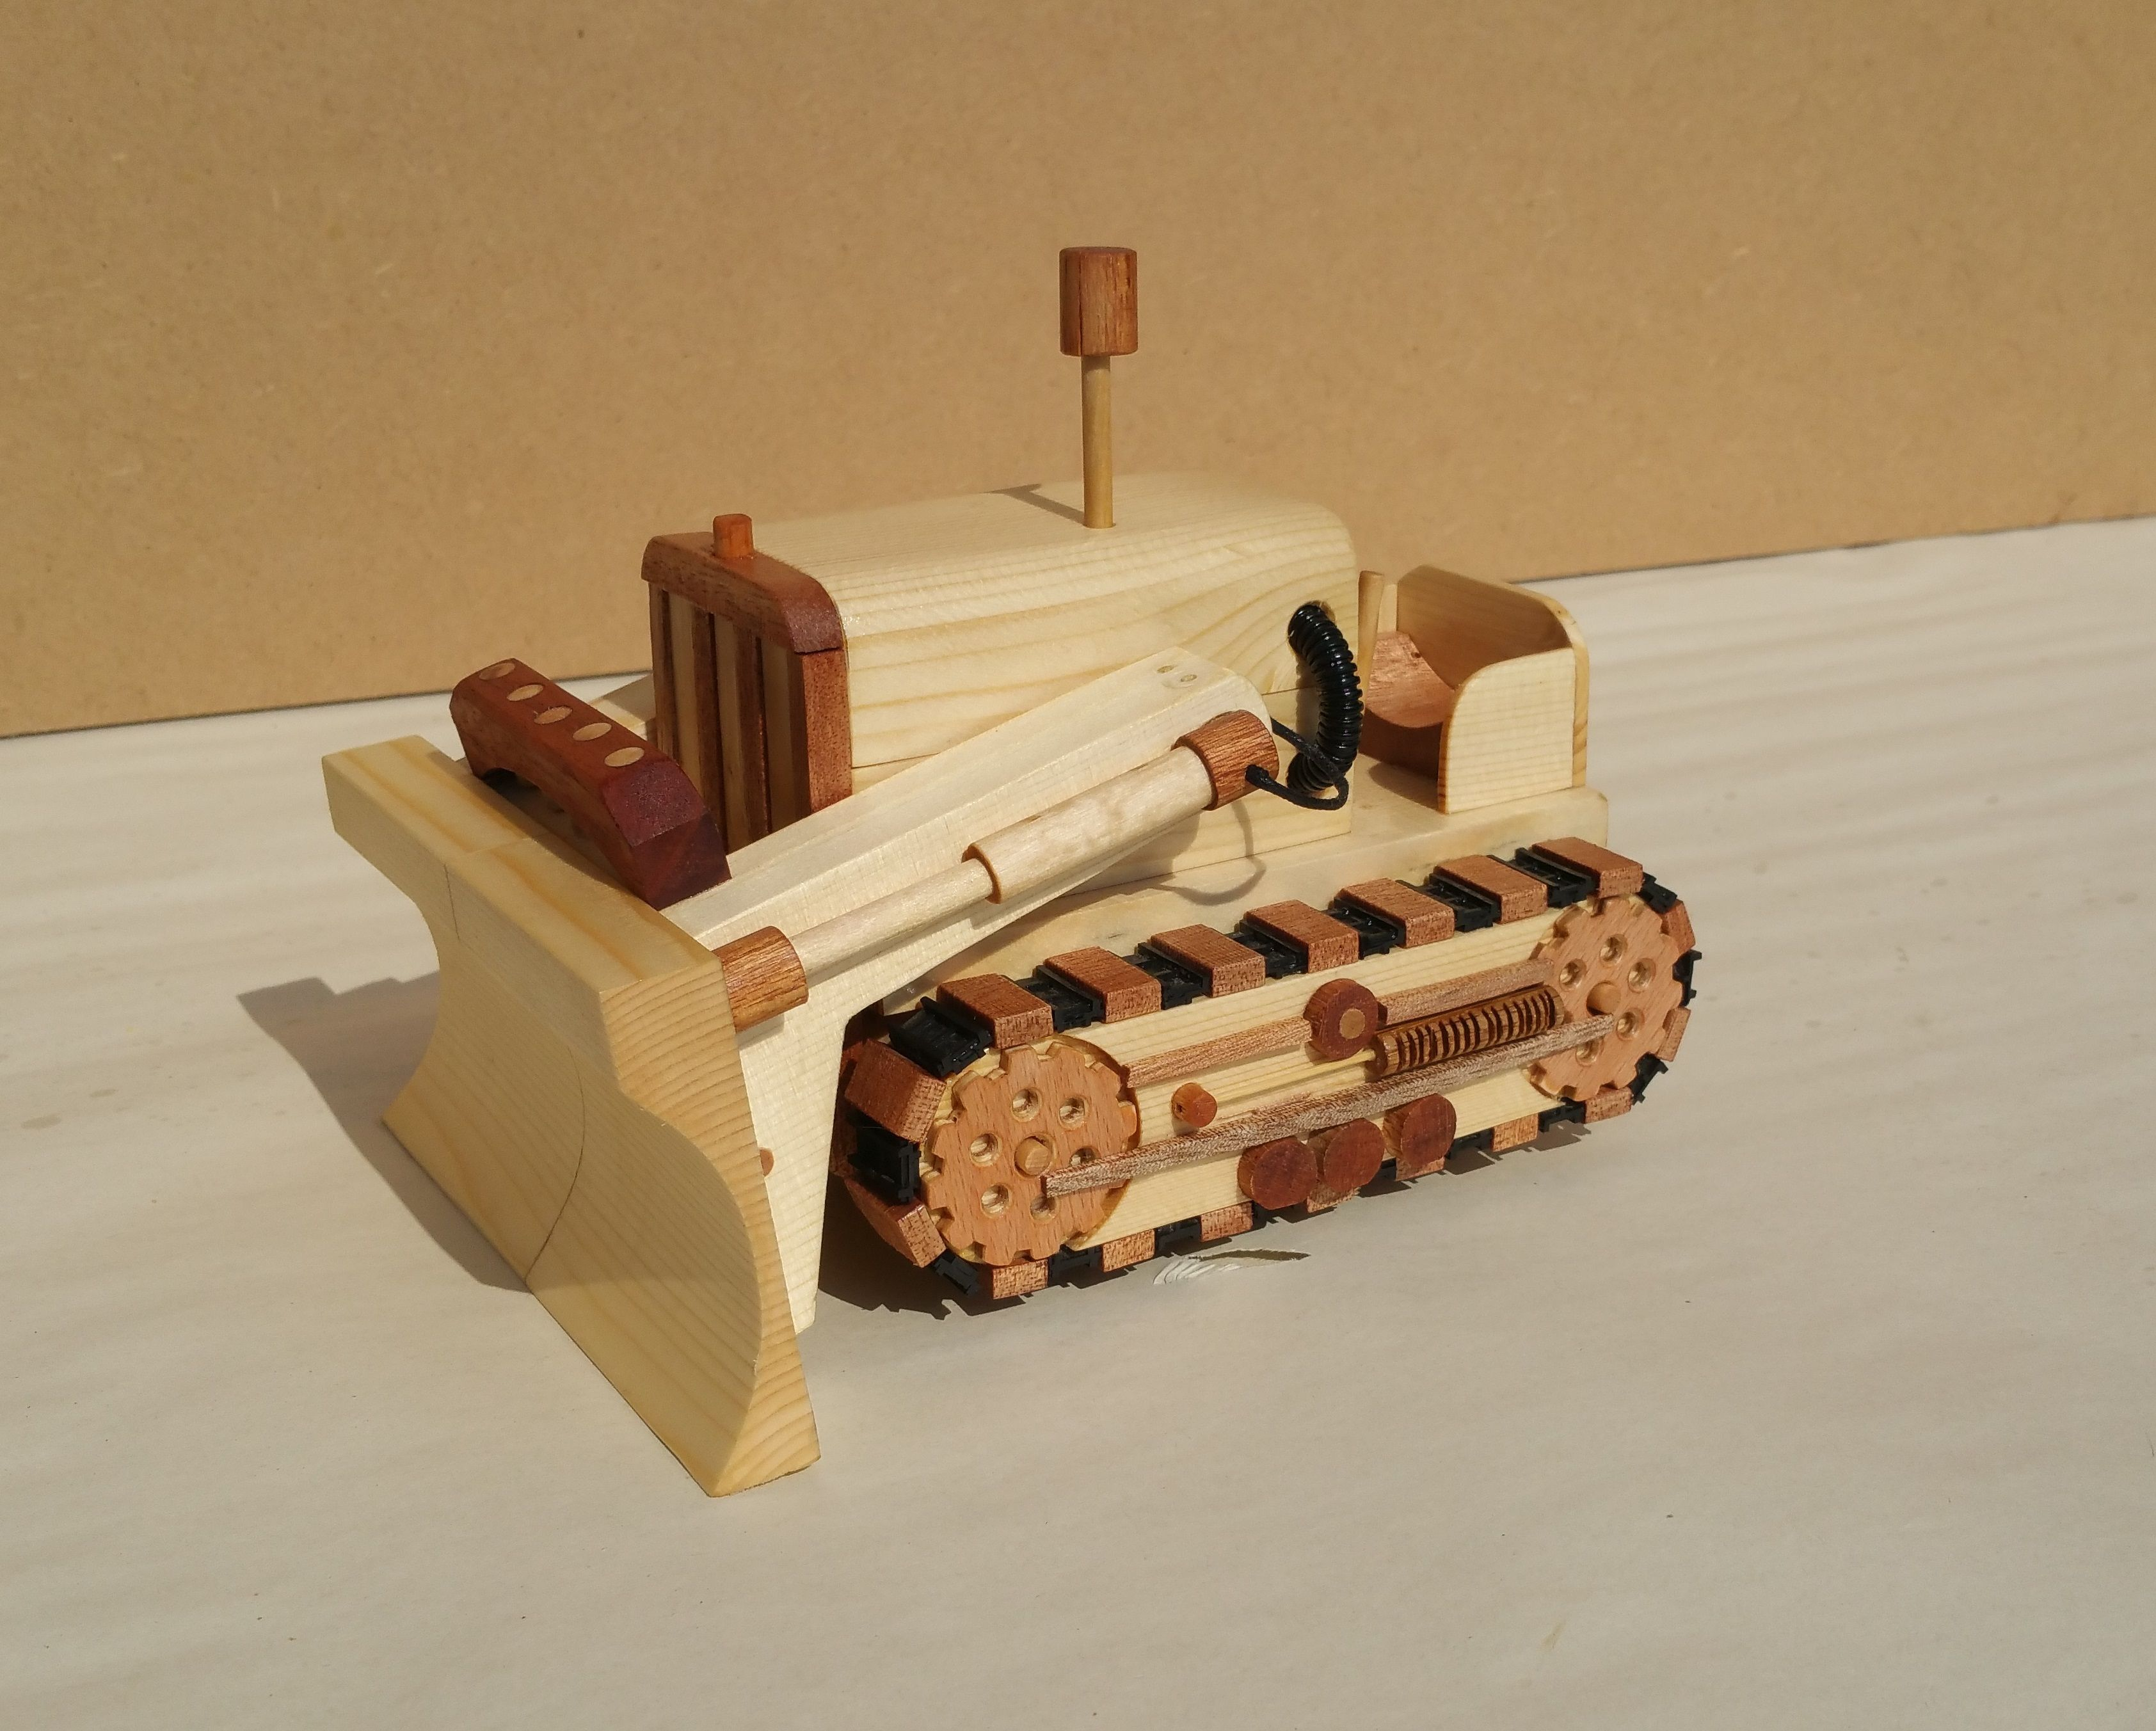 bulldozer based on plans from the great book of wooden toys